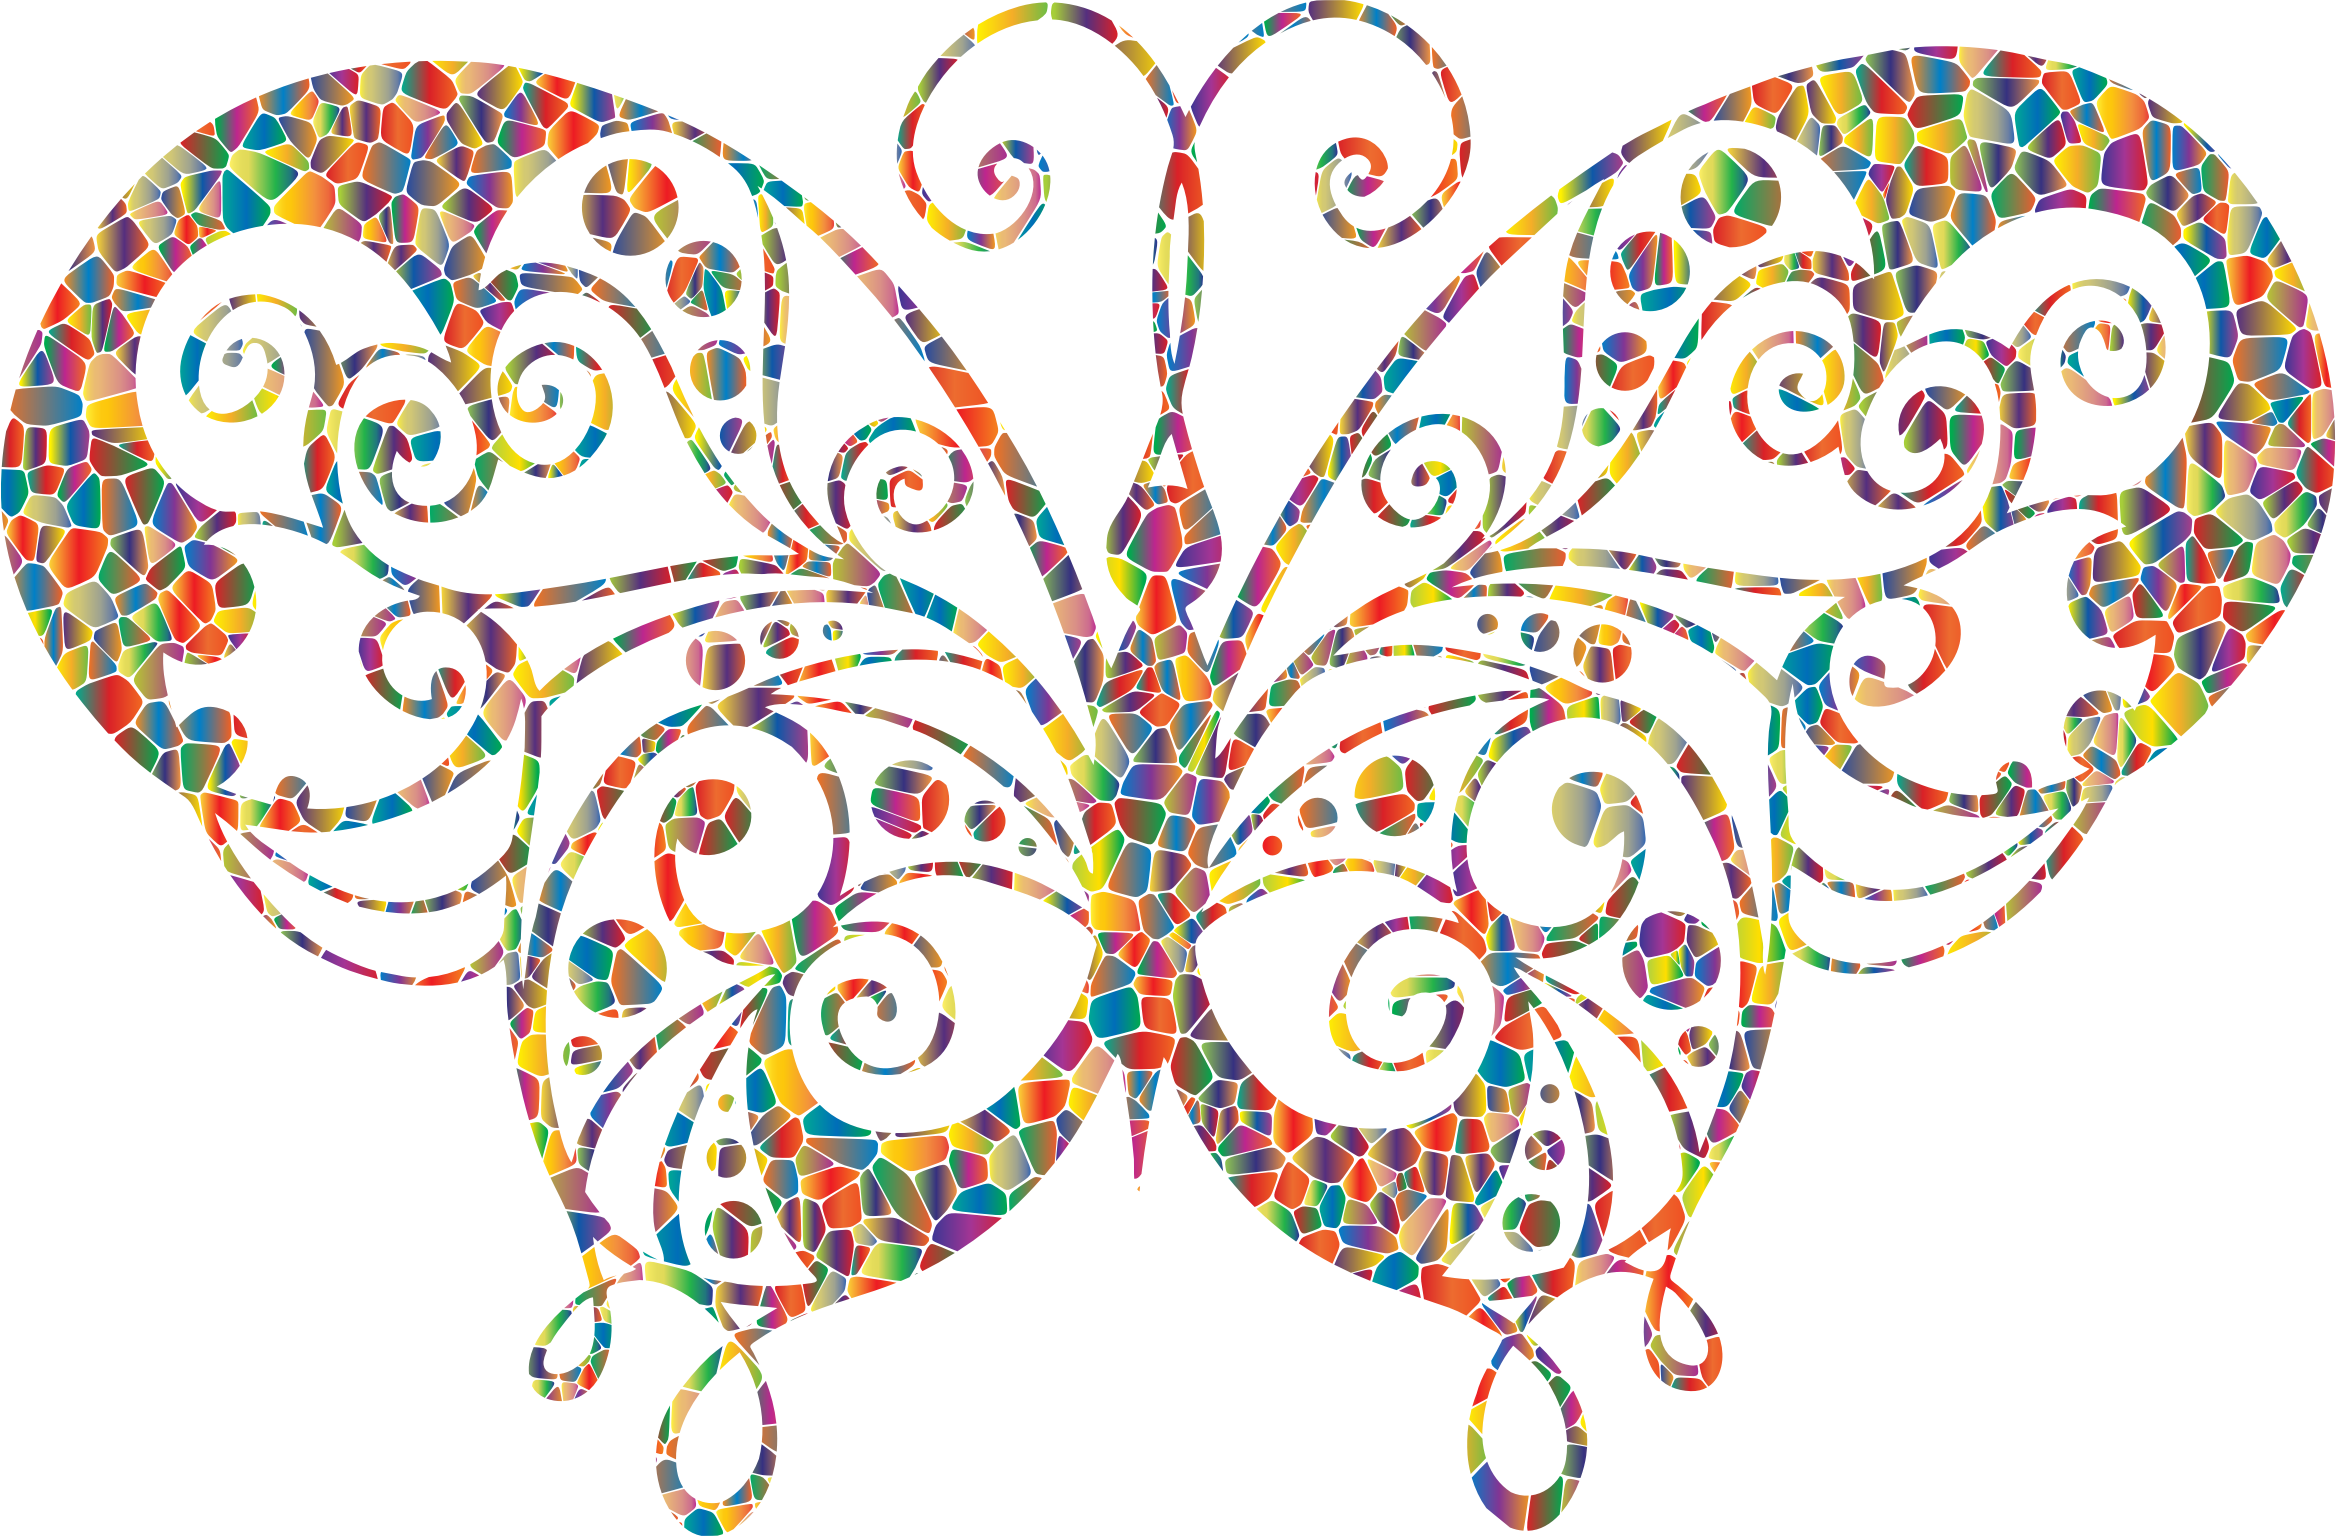 Polyprismatic Tiled Flourish Butterfly Silhouette by GDJ